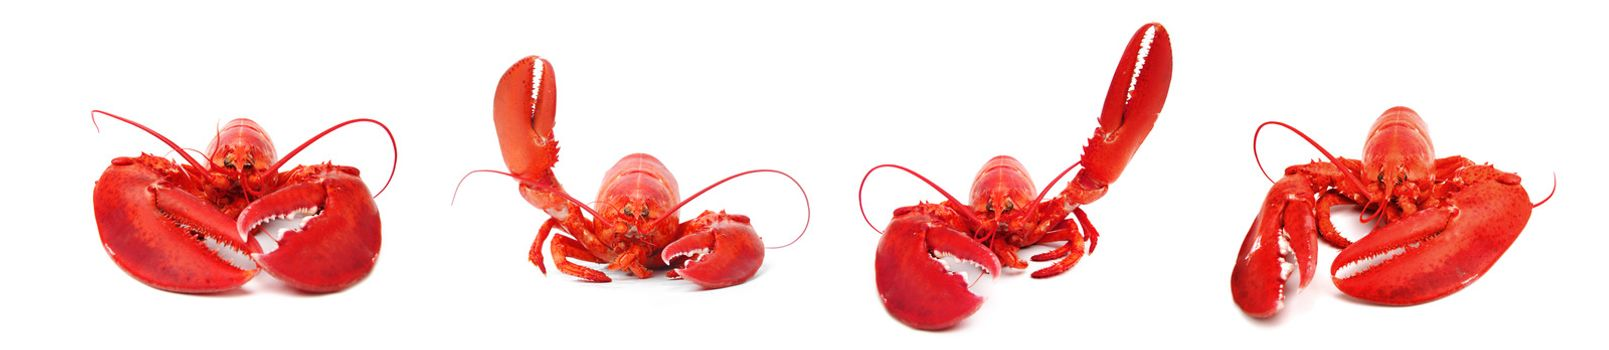 hello lobster set isolated on white background